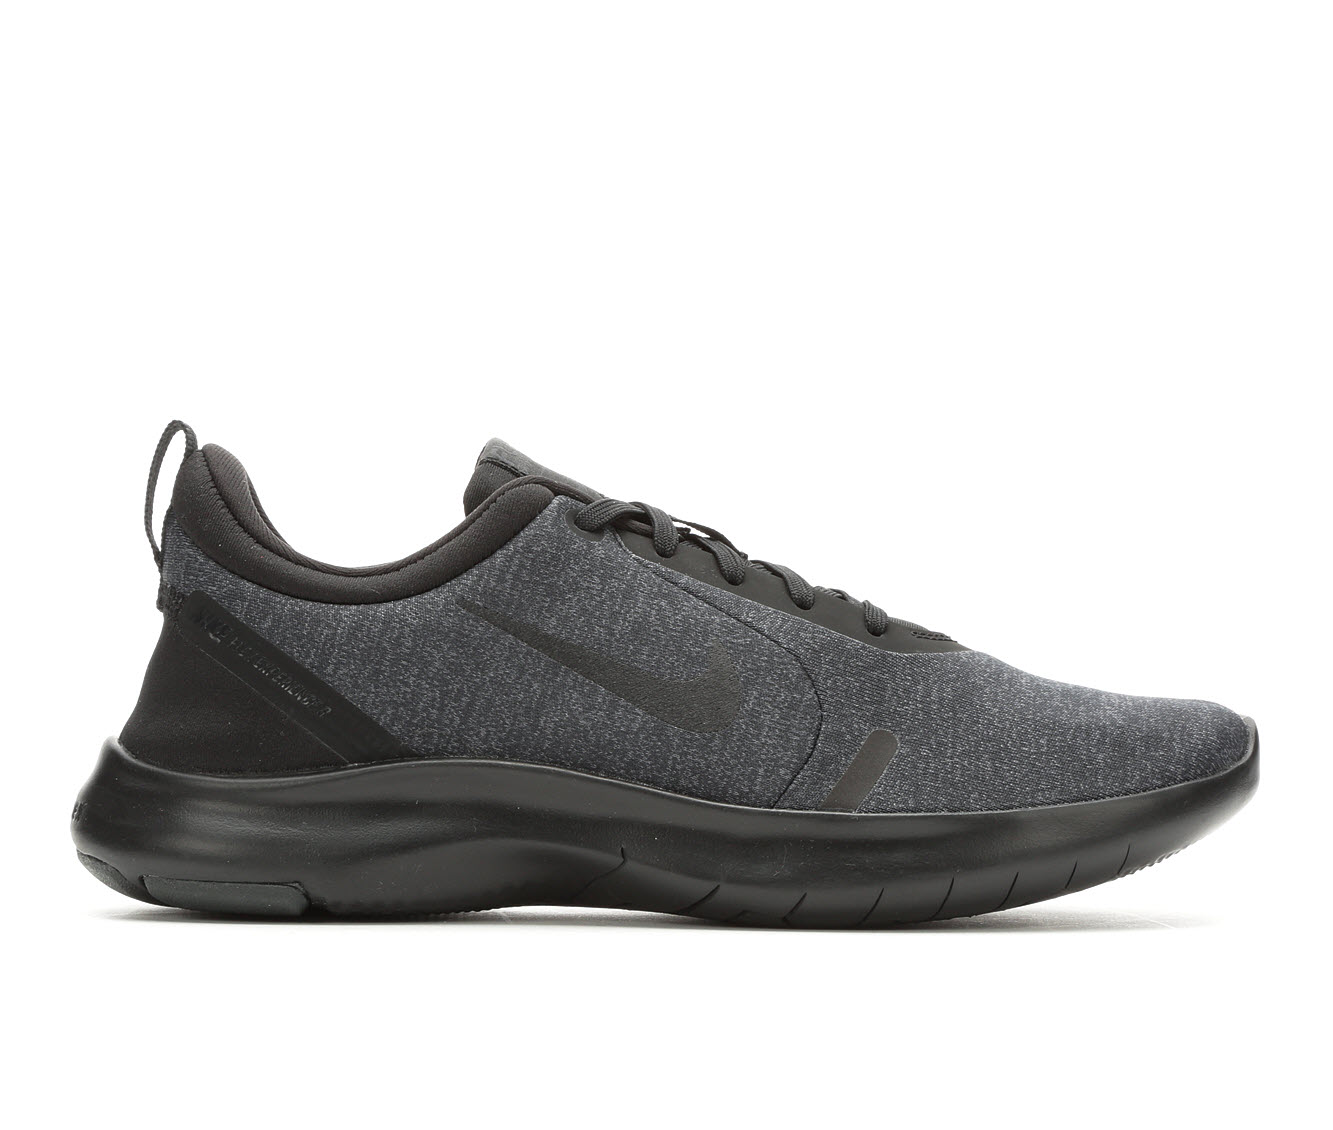 Nike Flex Experience Run 8 Women's Athletic Shoe (Black)